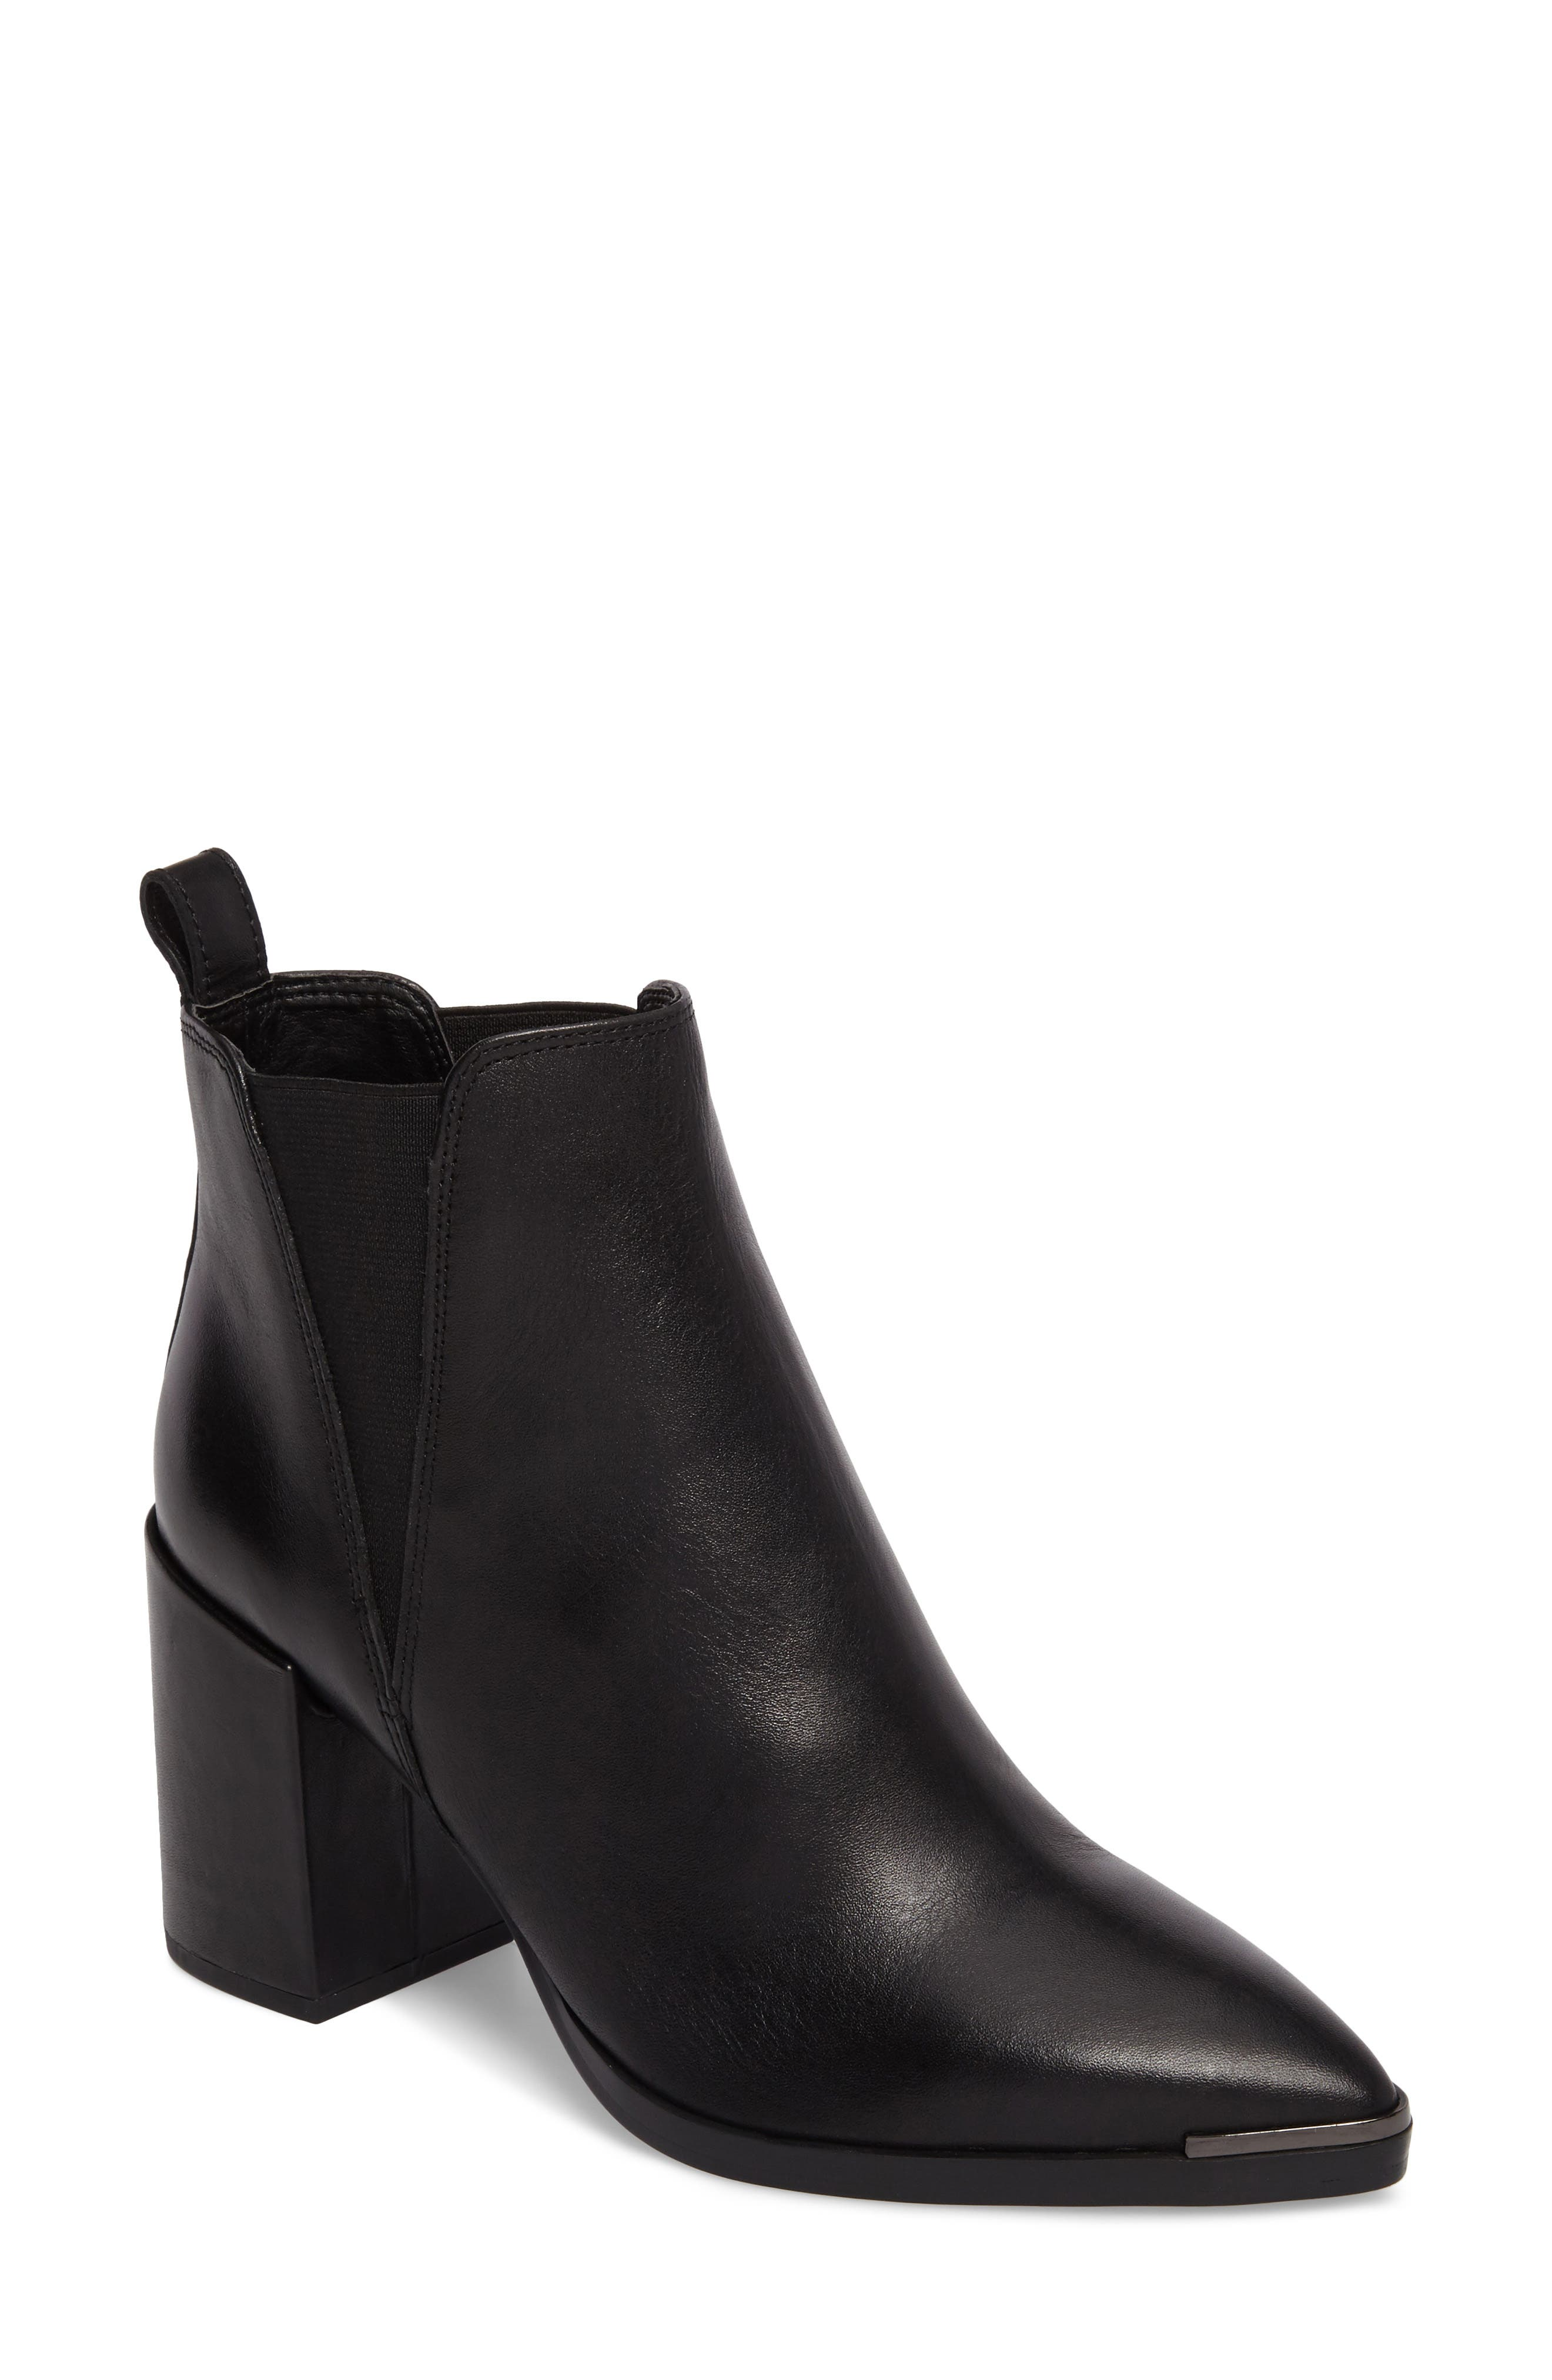 TONY BIANCO Bello Pointy Toe Bootie in Black Jetta Leather